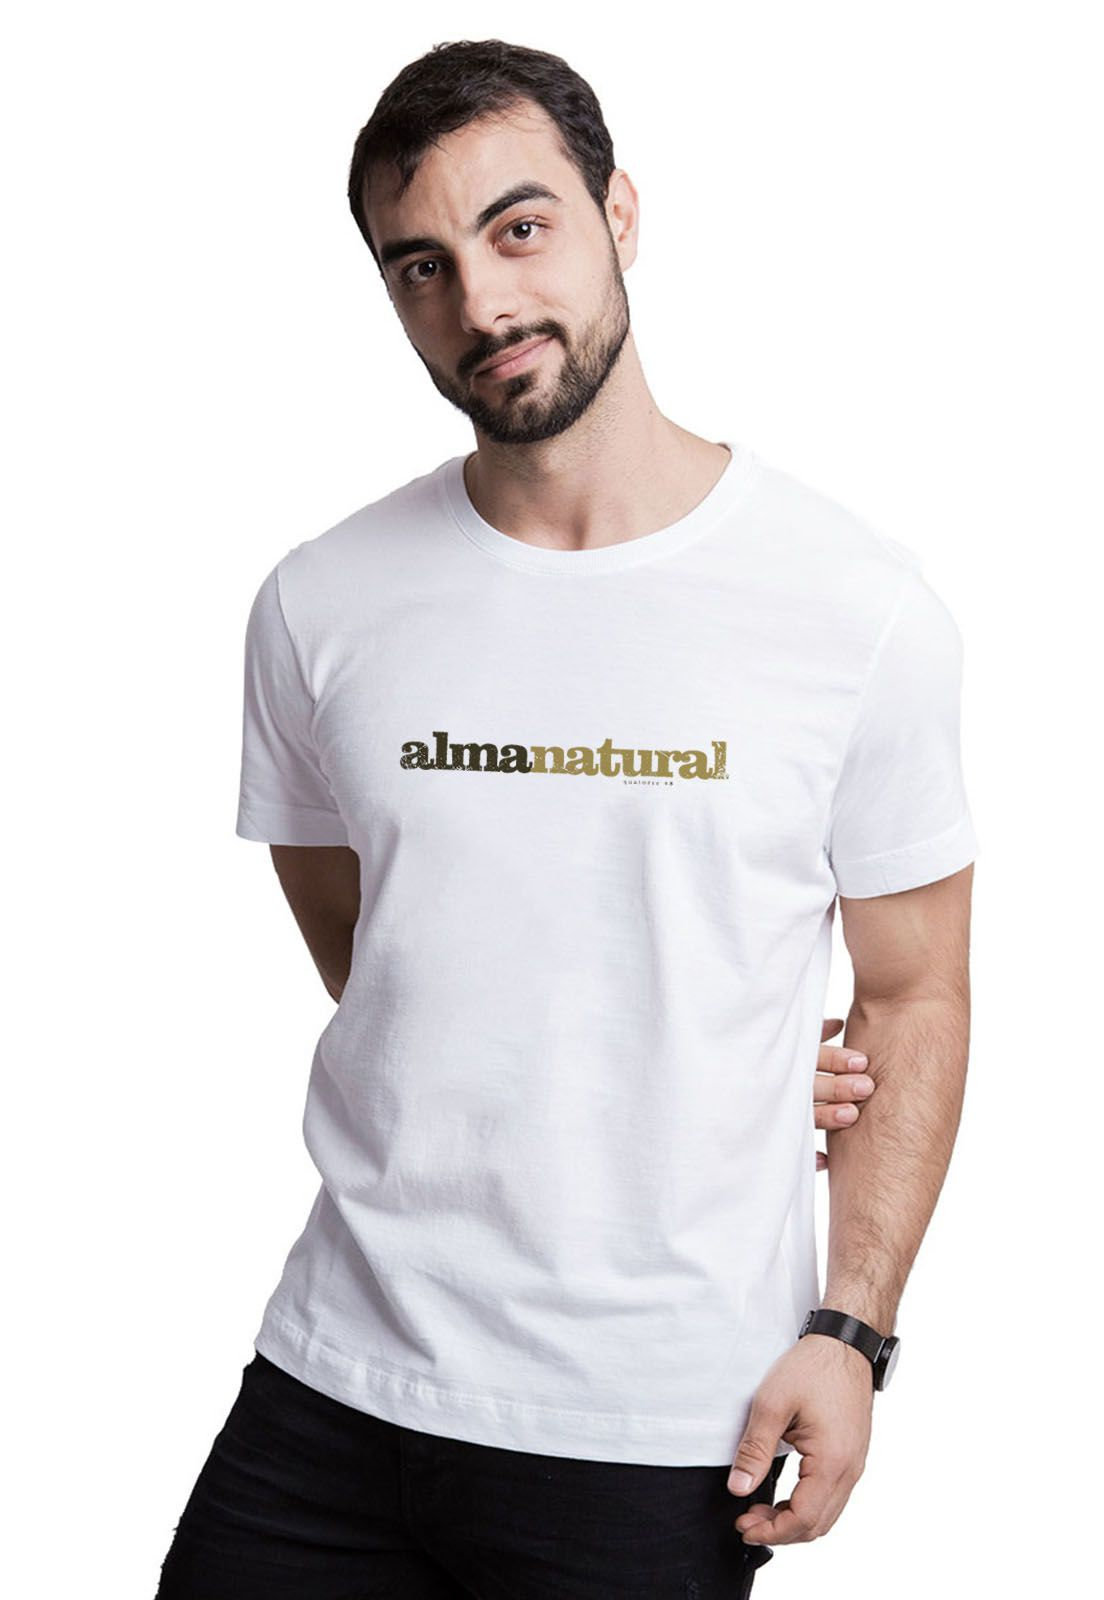 Camiseta Alma Natural Branca